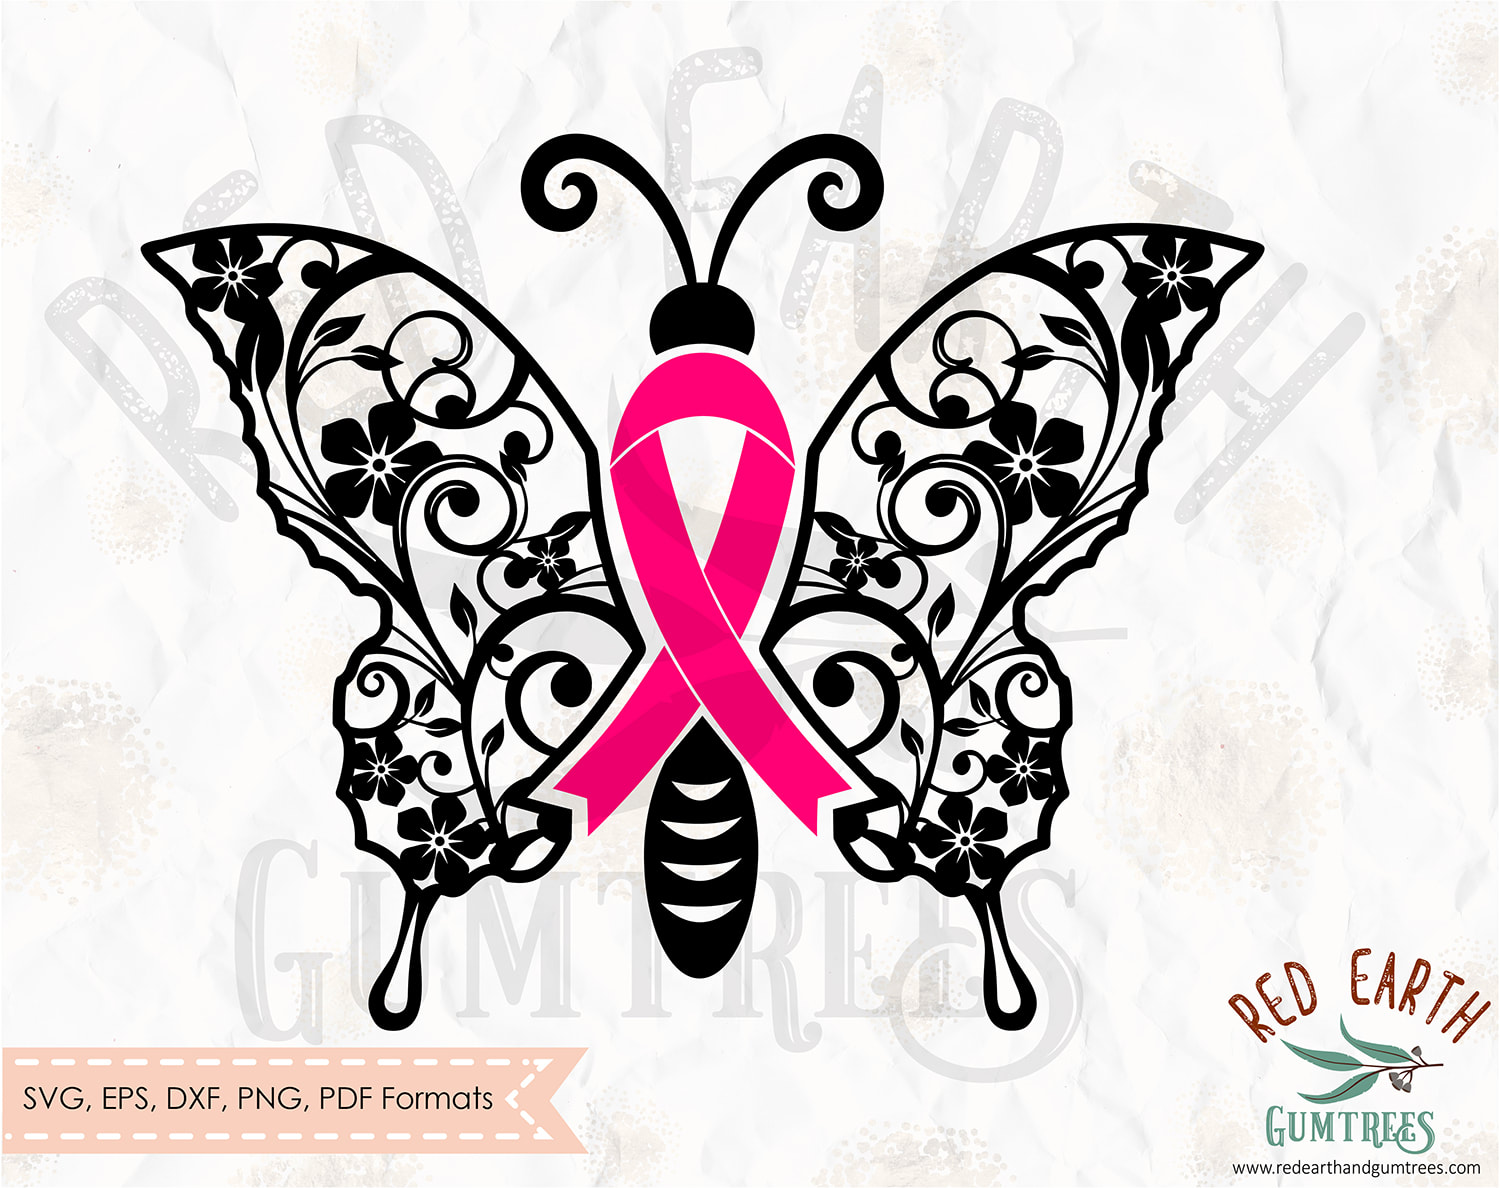 Free Butterfly Cancer Ribbon Free Floral Butterfly Cancer Ribbon Survivor In Svg Eps Pdf Dxf Png Formats Cancer Pink Ribbon Free Breast Cancer Ribbon Cricut Silhouette Cameo Vinyl Decal T Shirt Design Mtc